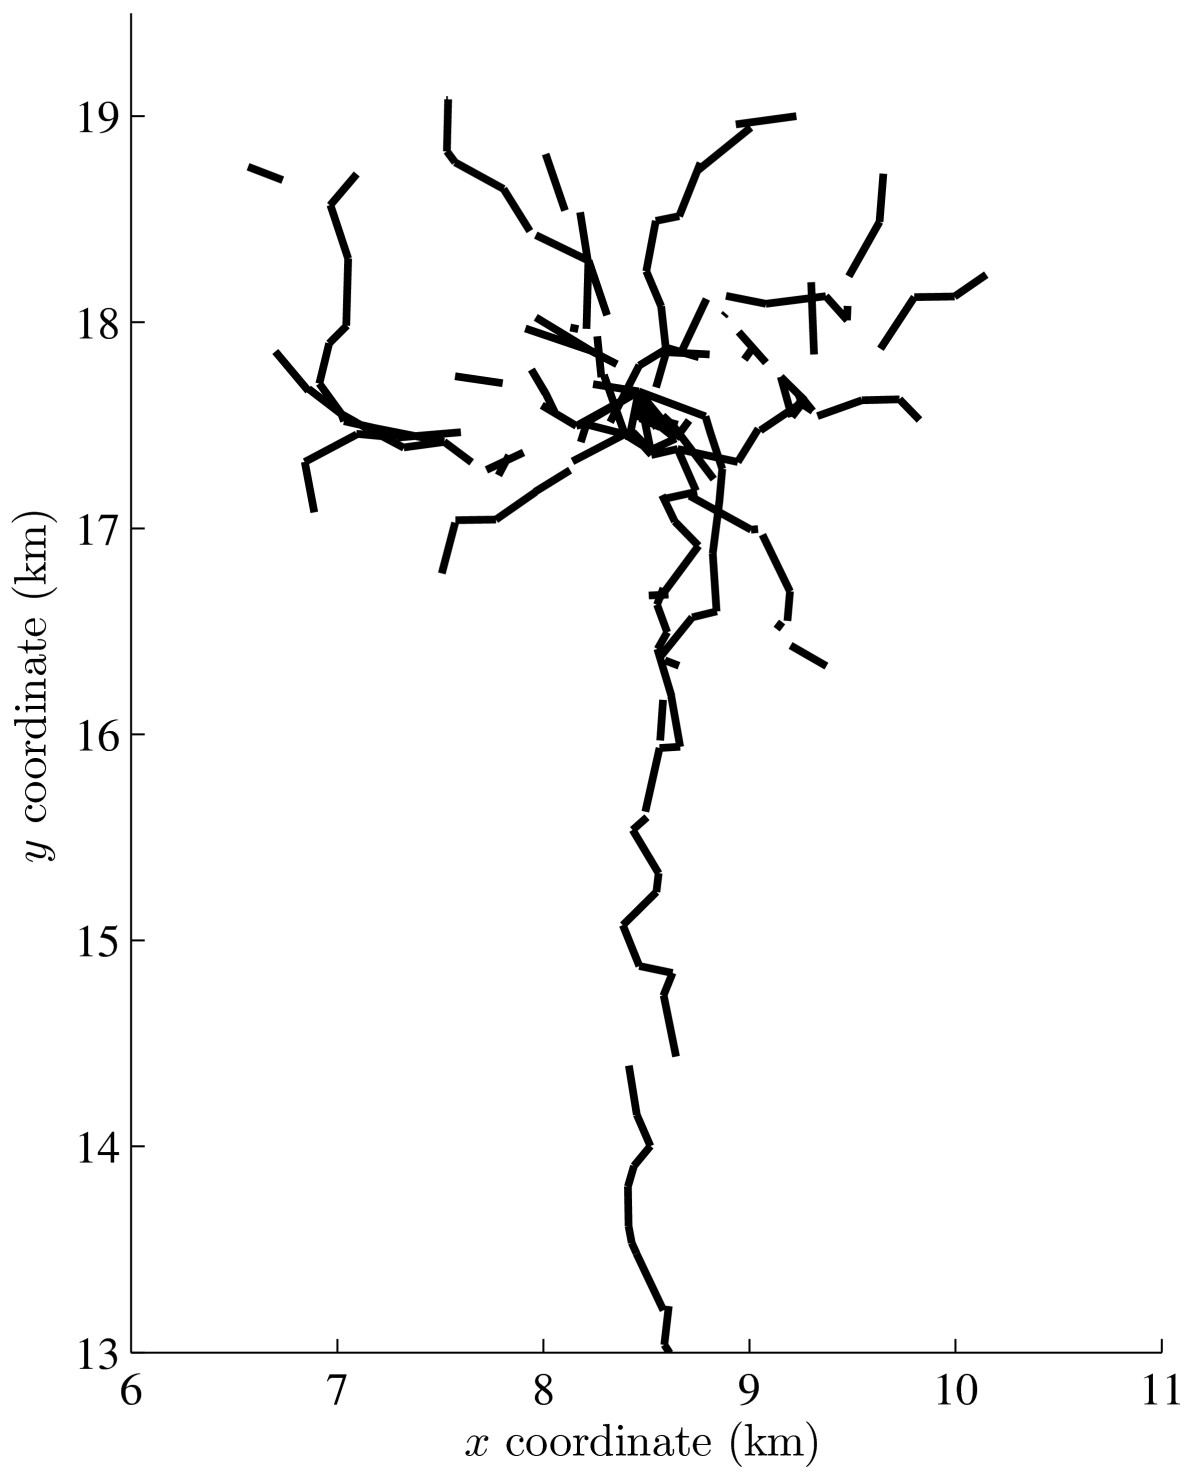 http://static-content.springer.com/image/art%3A10.1186%2F1687-1499-2013-23/MediaObjects/13638_2011_Article_606_Fig1_HTML.jpg